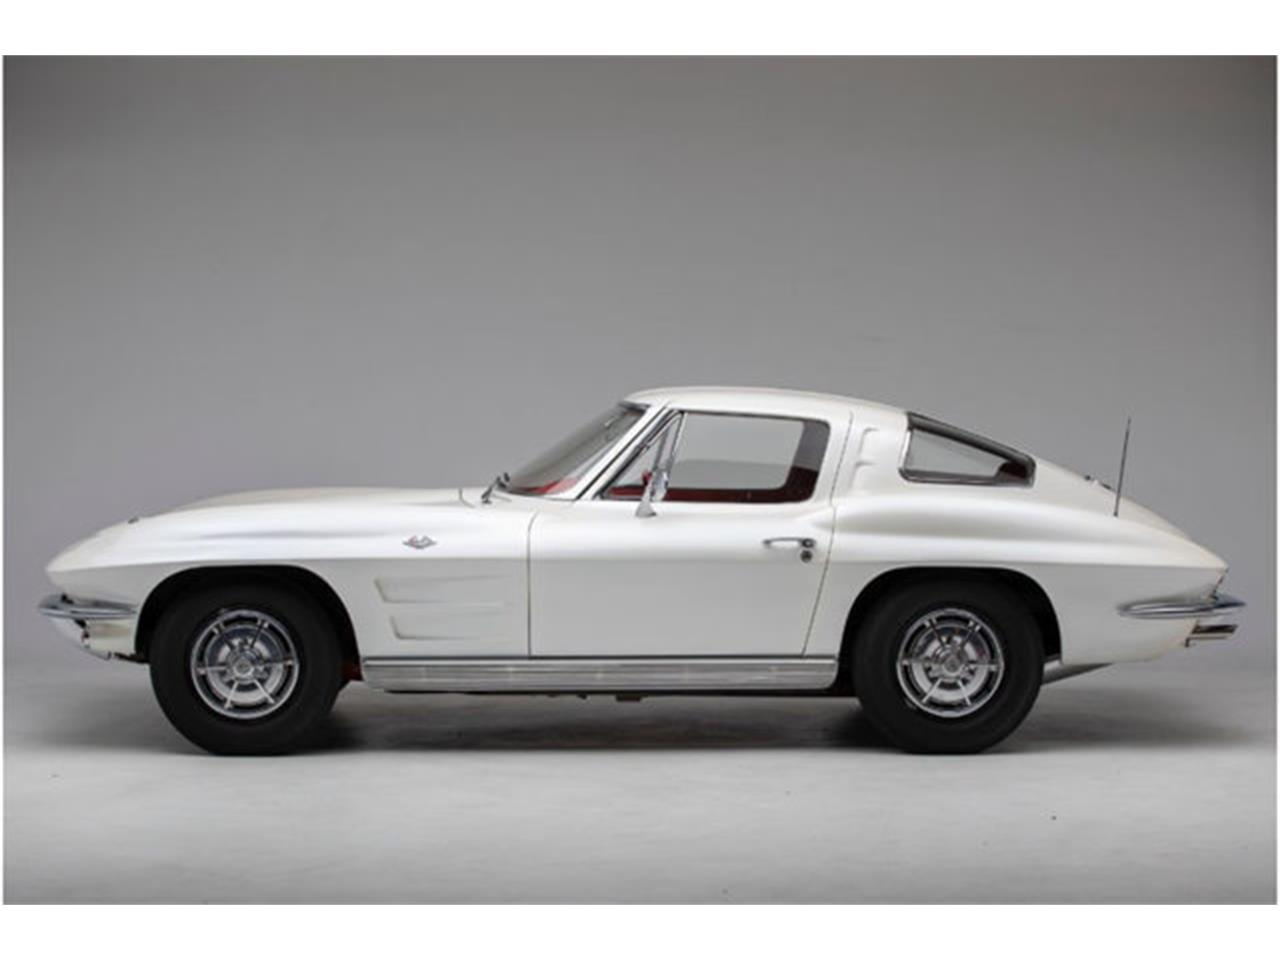 Large Picture of 1963 Chevrolet Corvette located in New York - $139,999.00 Offered by Prestige Motor Car Co. - QOXV